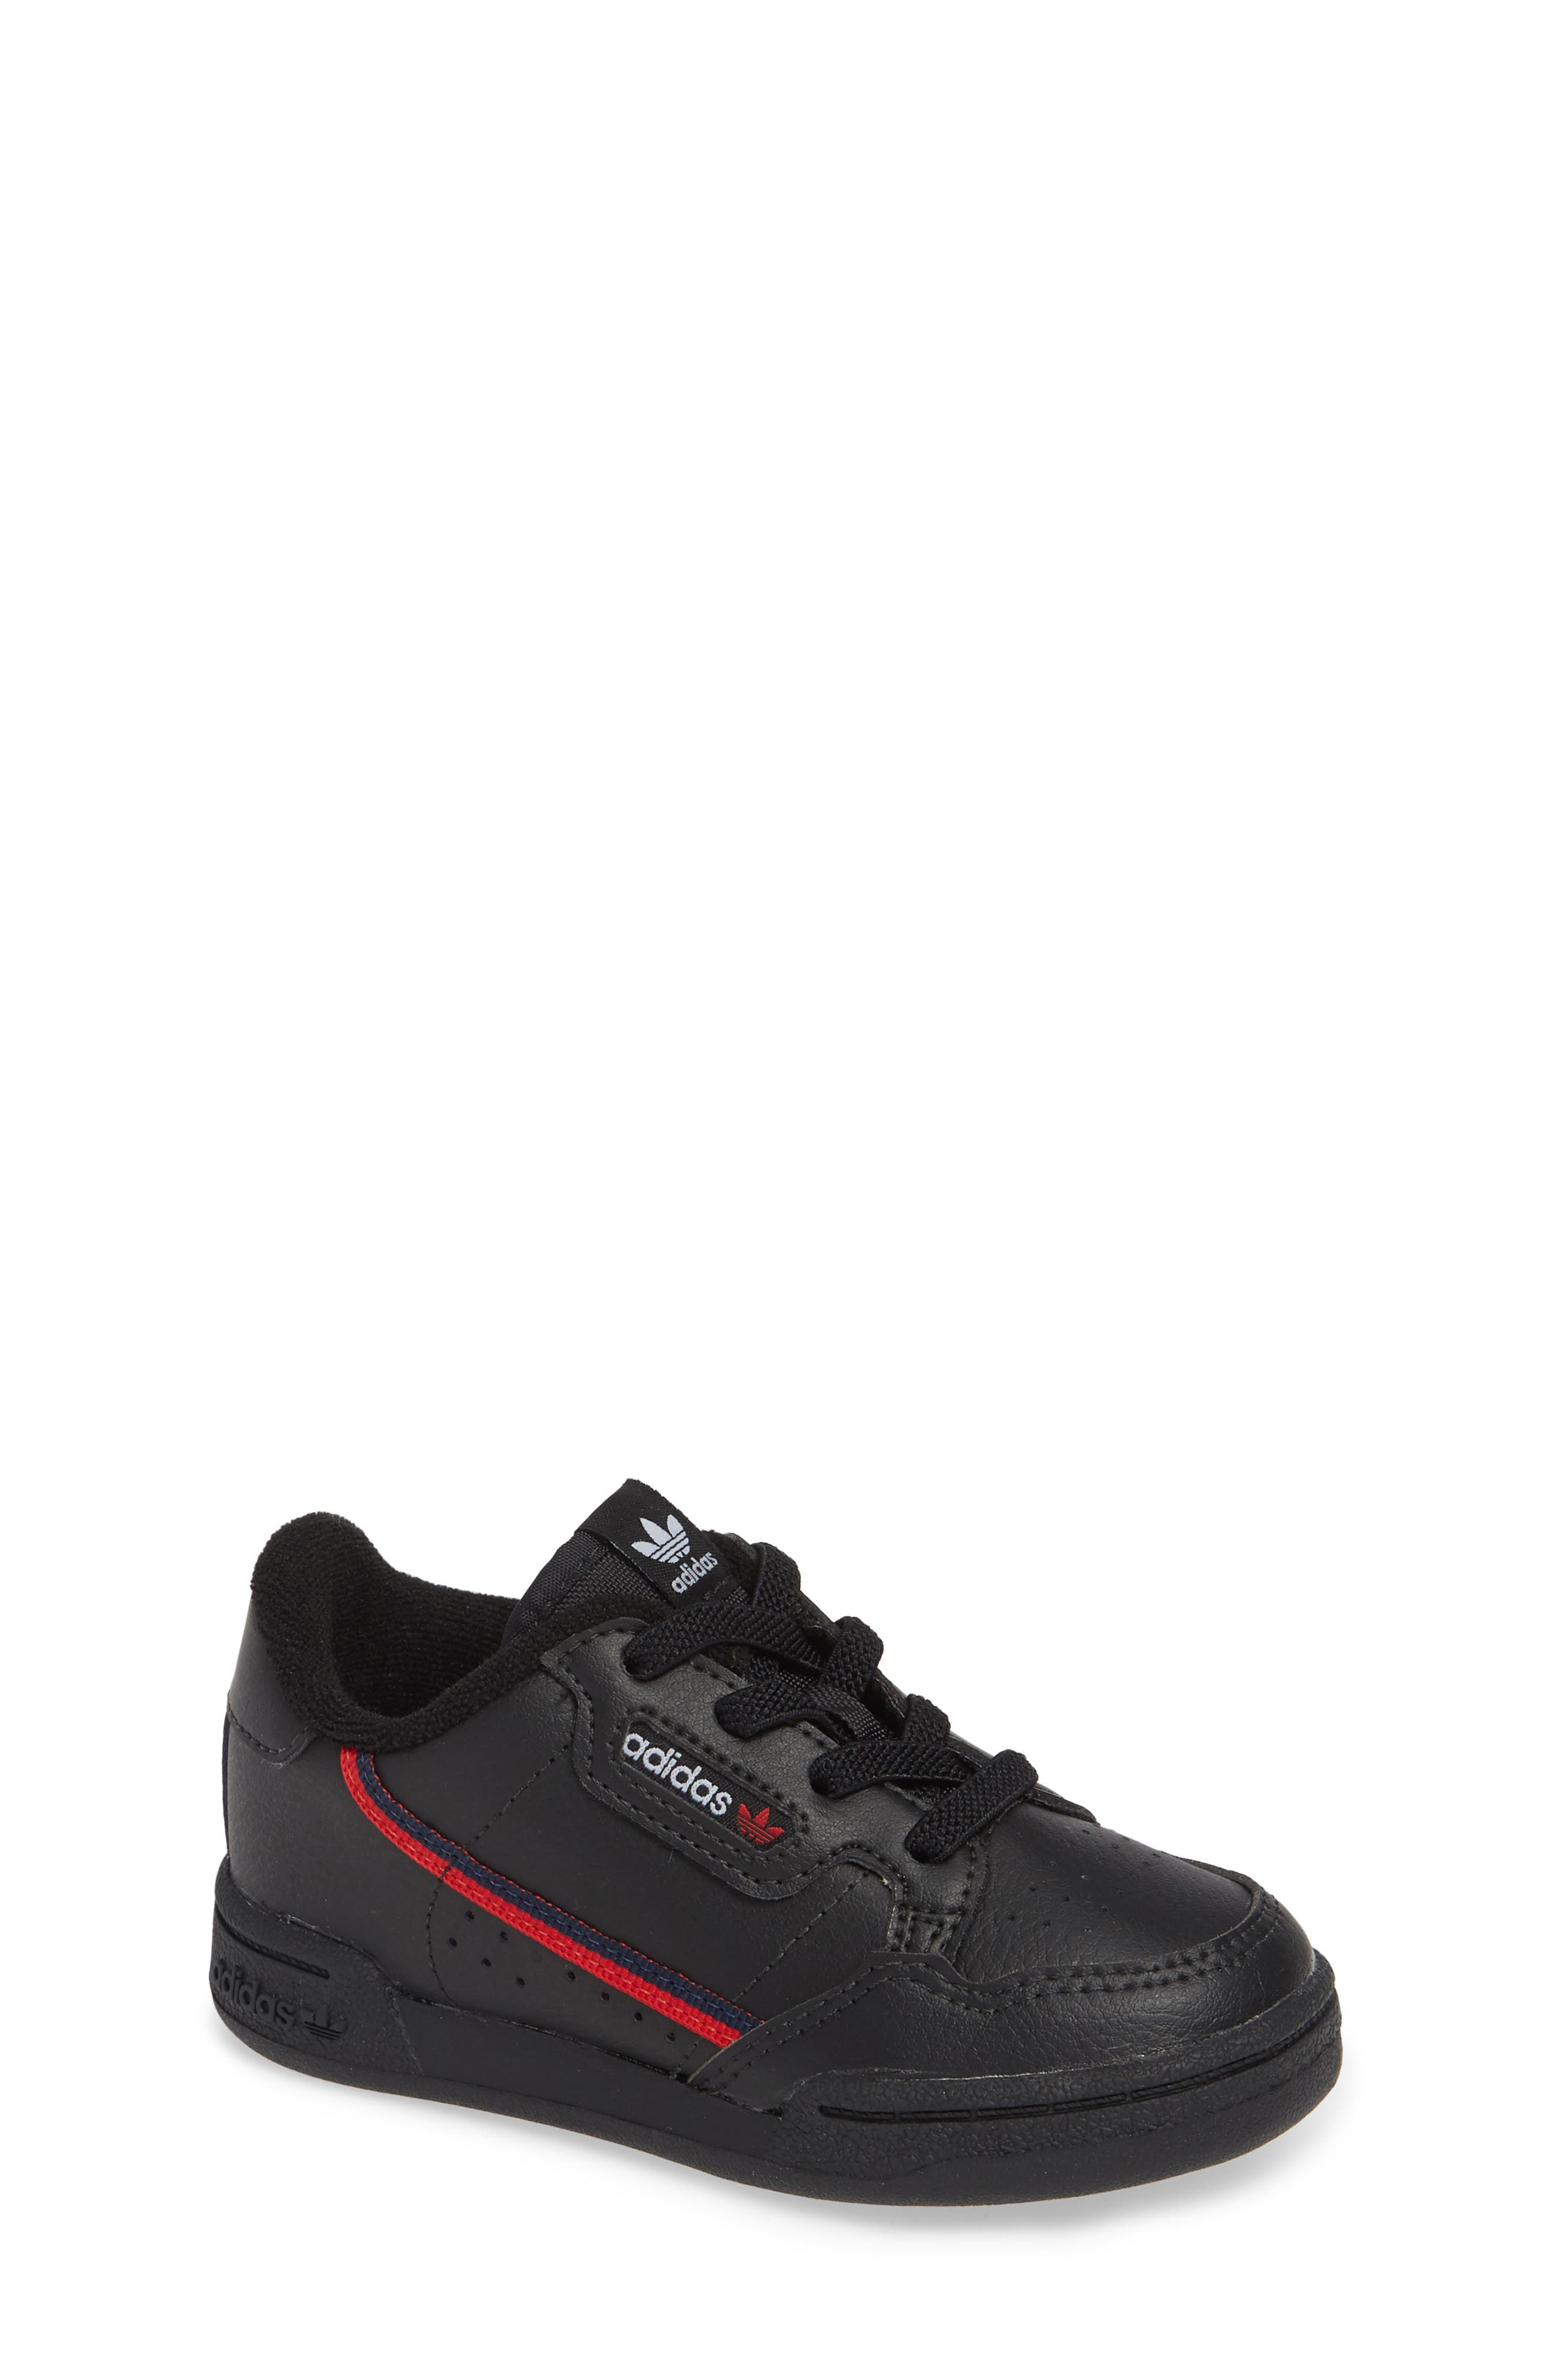 ADIDAS, Continental 80 Sneaker, Main thumbnail 1, color, CORE BLACK/ SCARLET/ NAVY